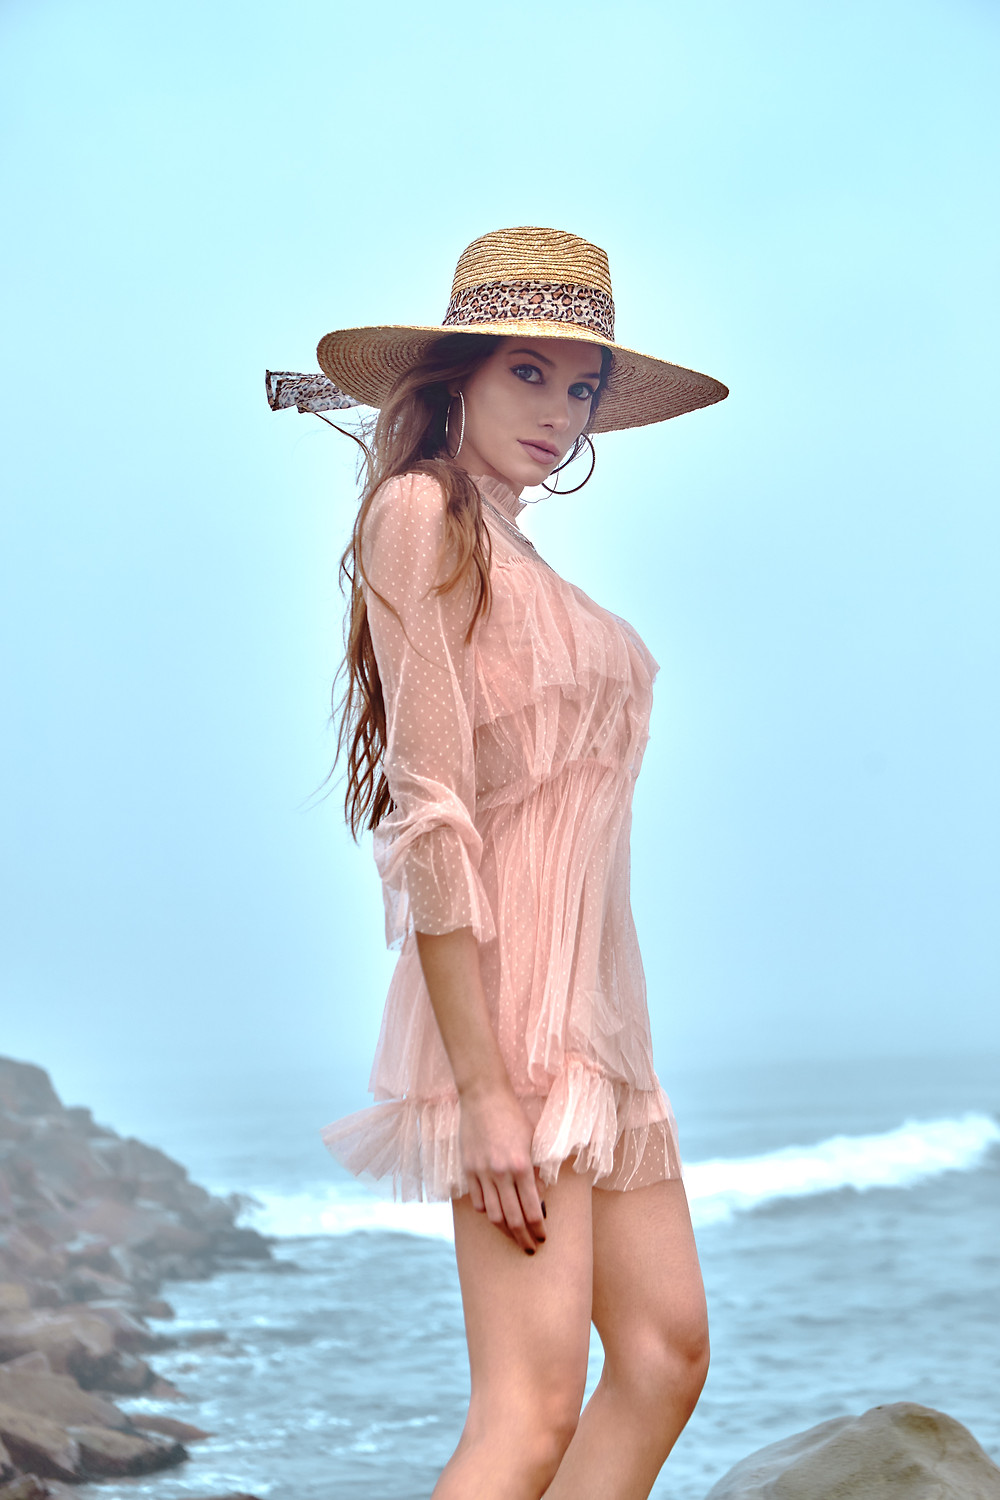 Fashion portrait of model Sofija Stojkovic at Aston Models in Los Angeles, California wearing a pink beach dress, large hoop earrings, and a straw hat with a leopard sash.